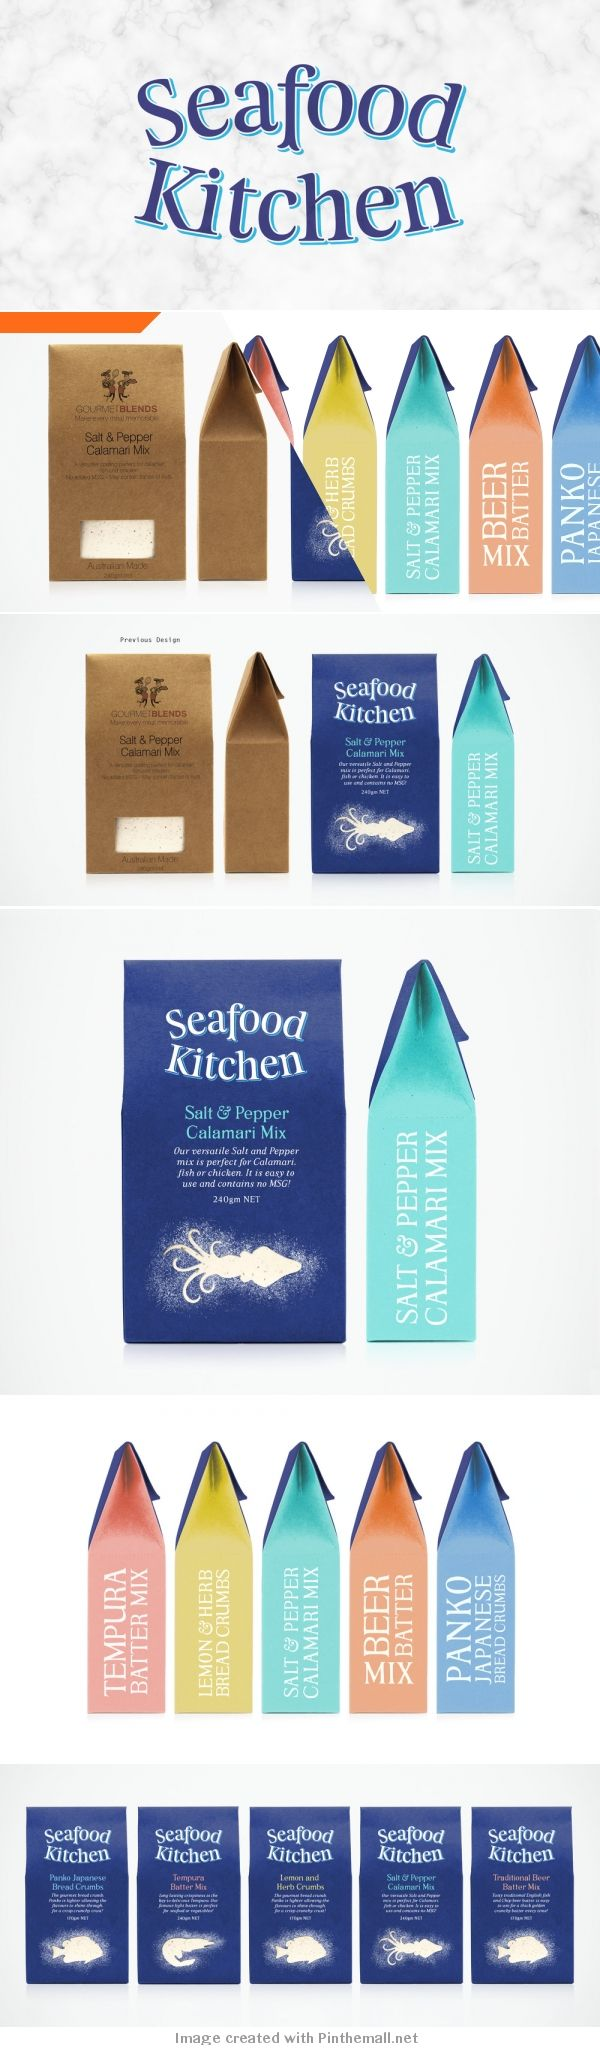 Seafood Kitchen let's make some calamari #packaging PD